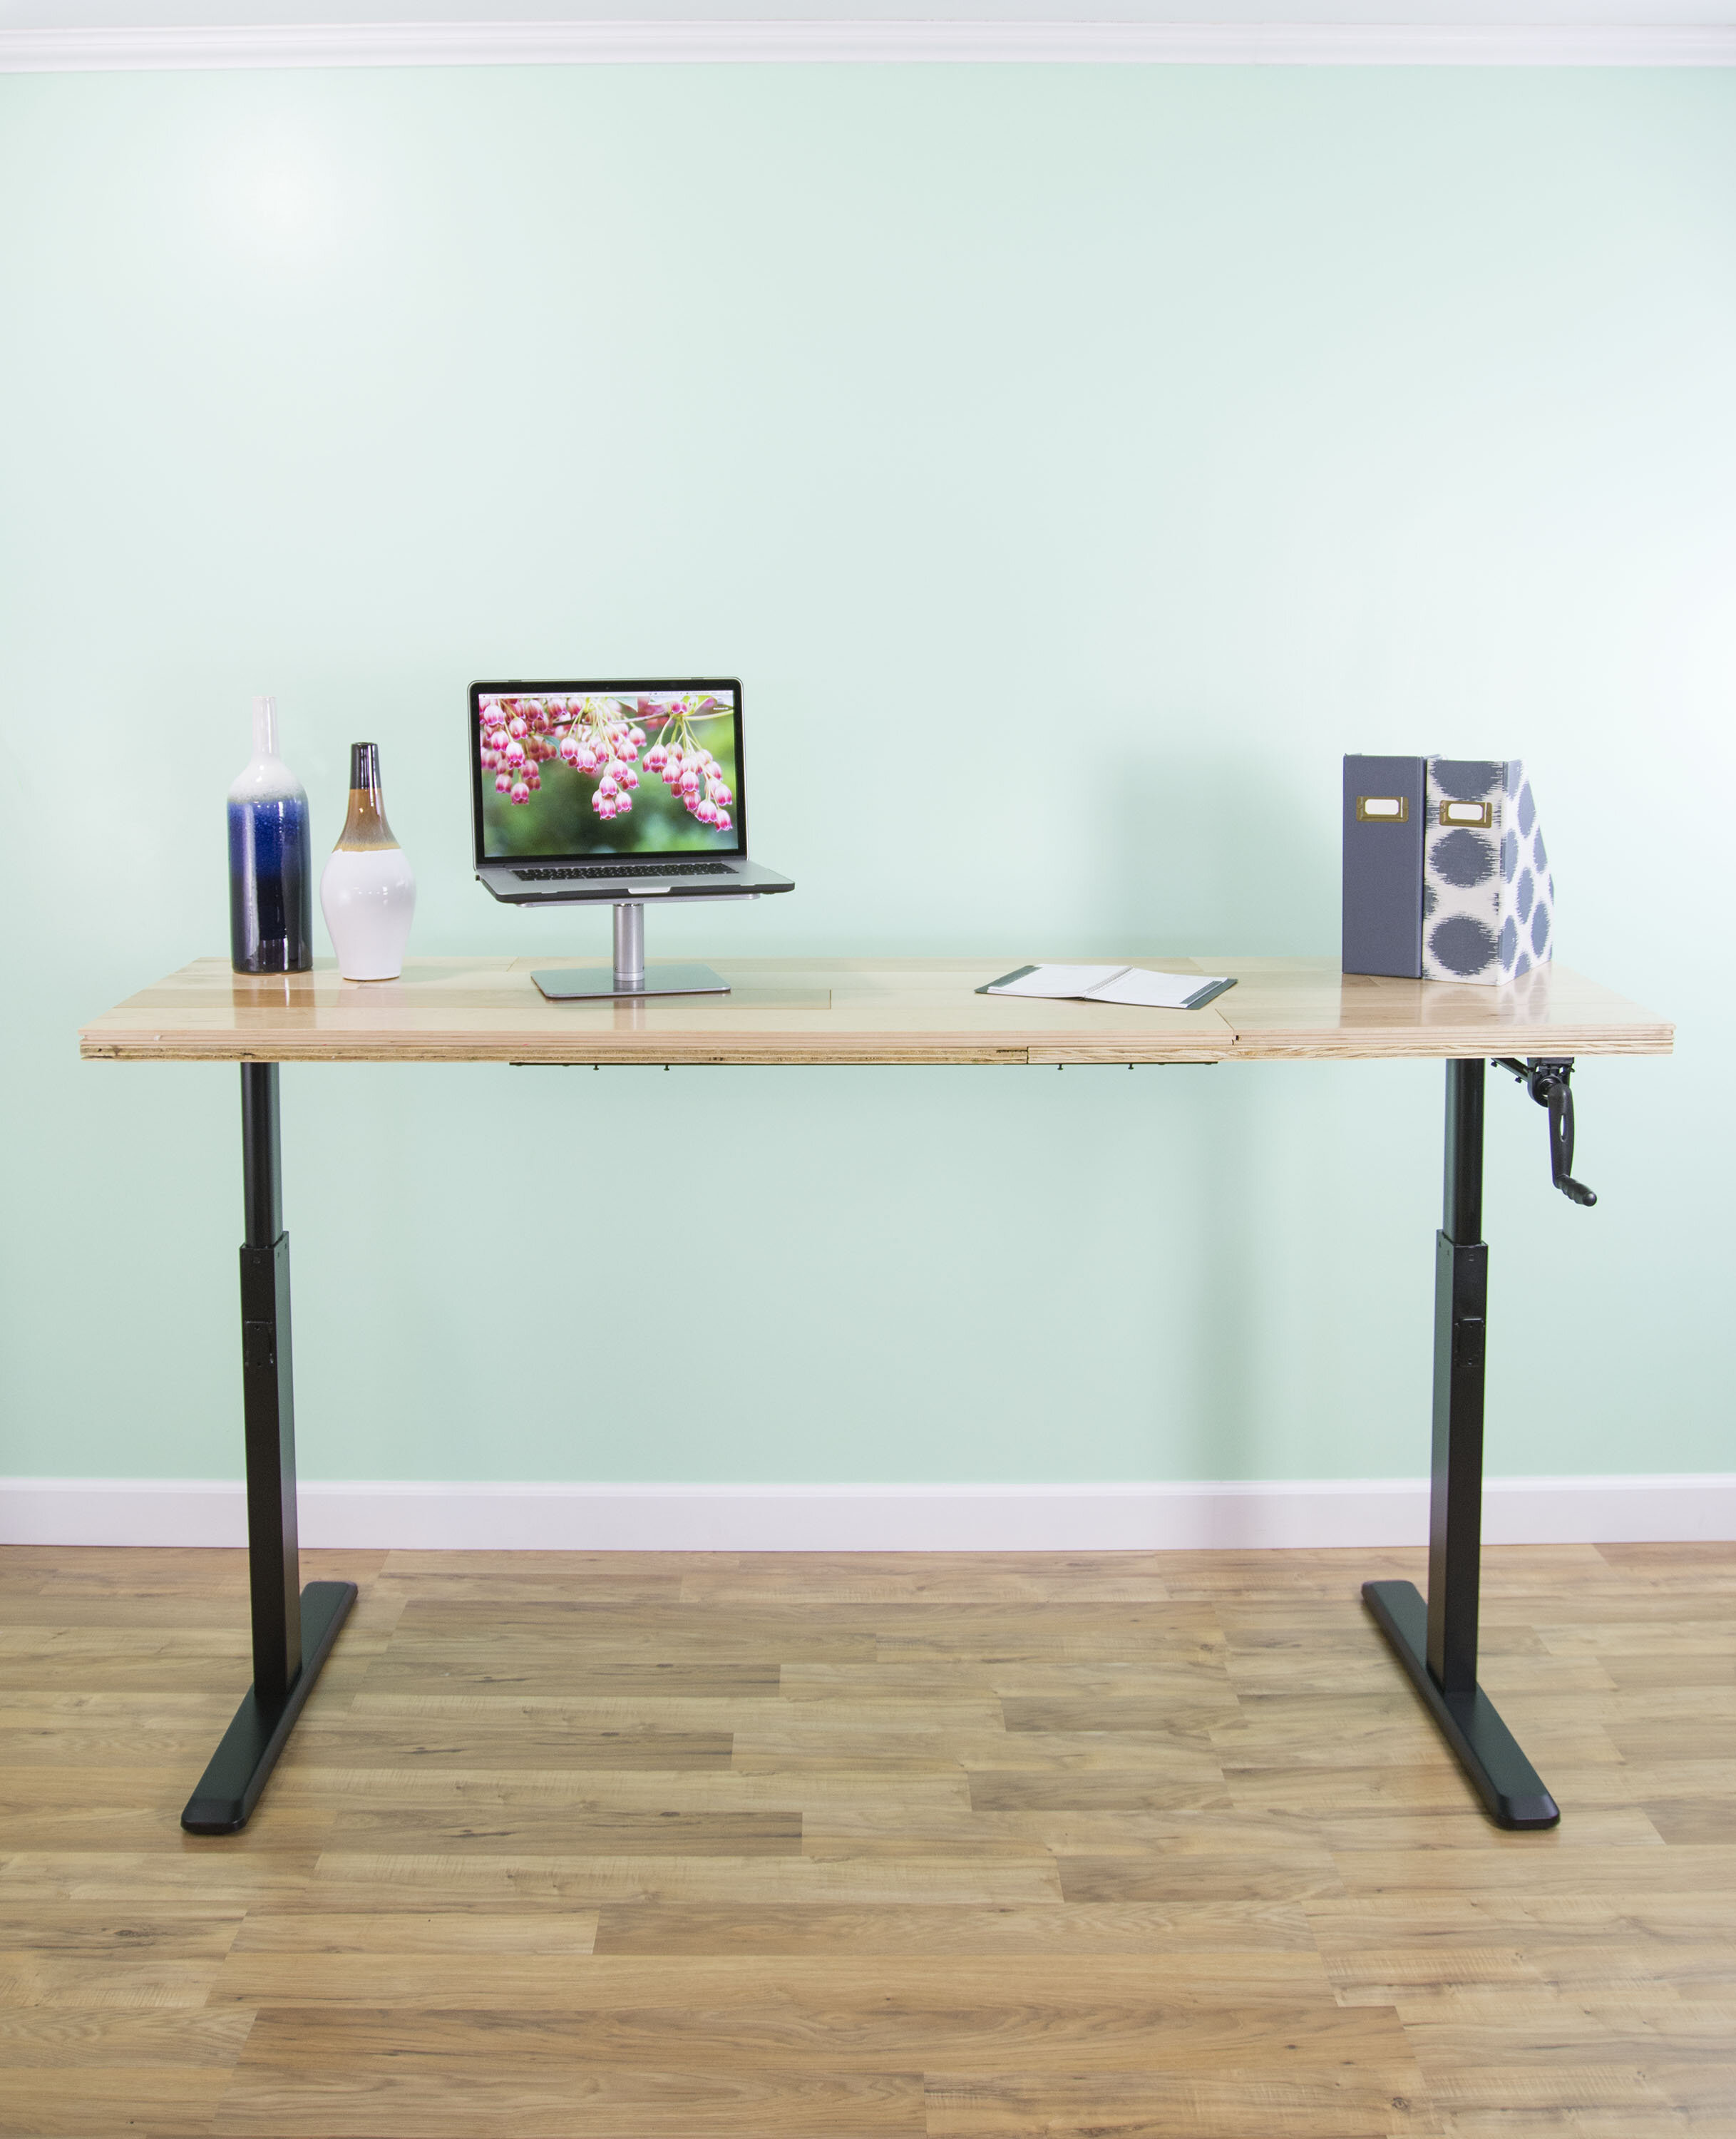 standup treadmill up best stand diy guide patterns standing ideas or desk